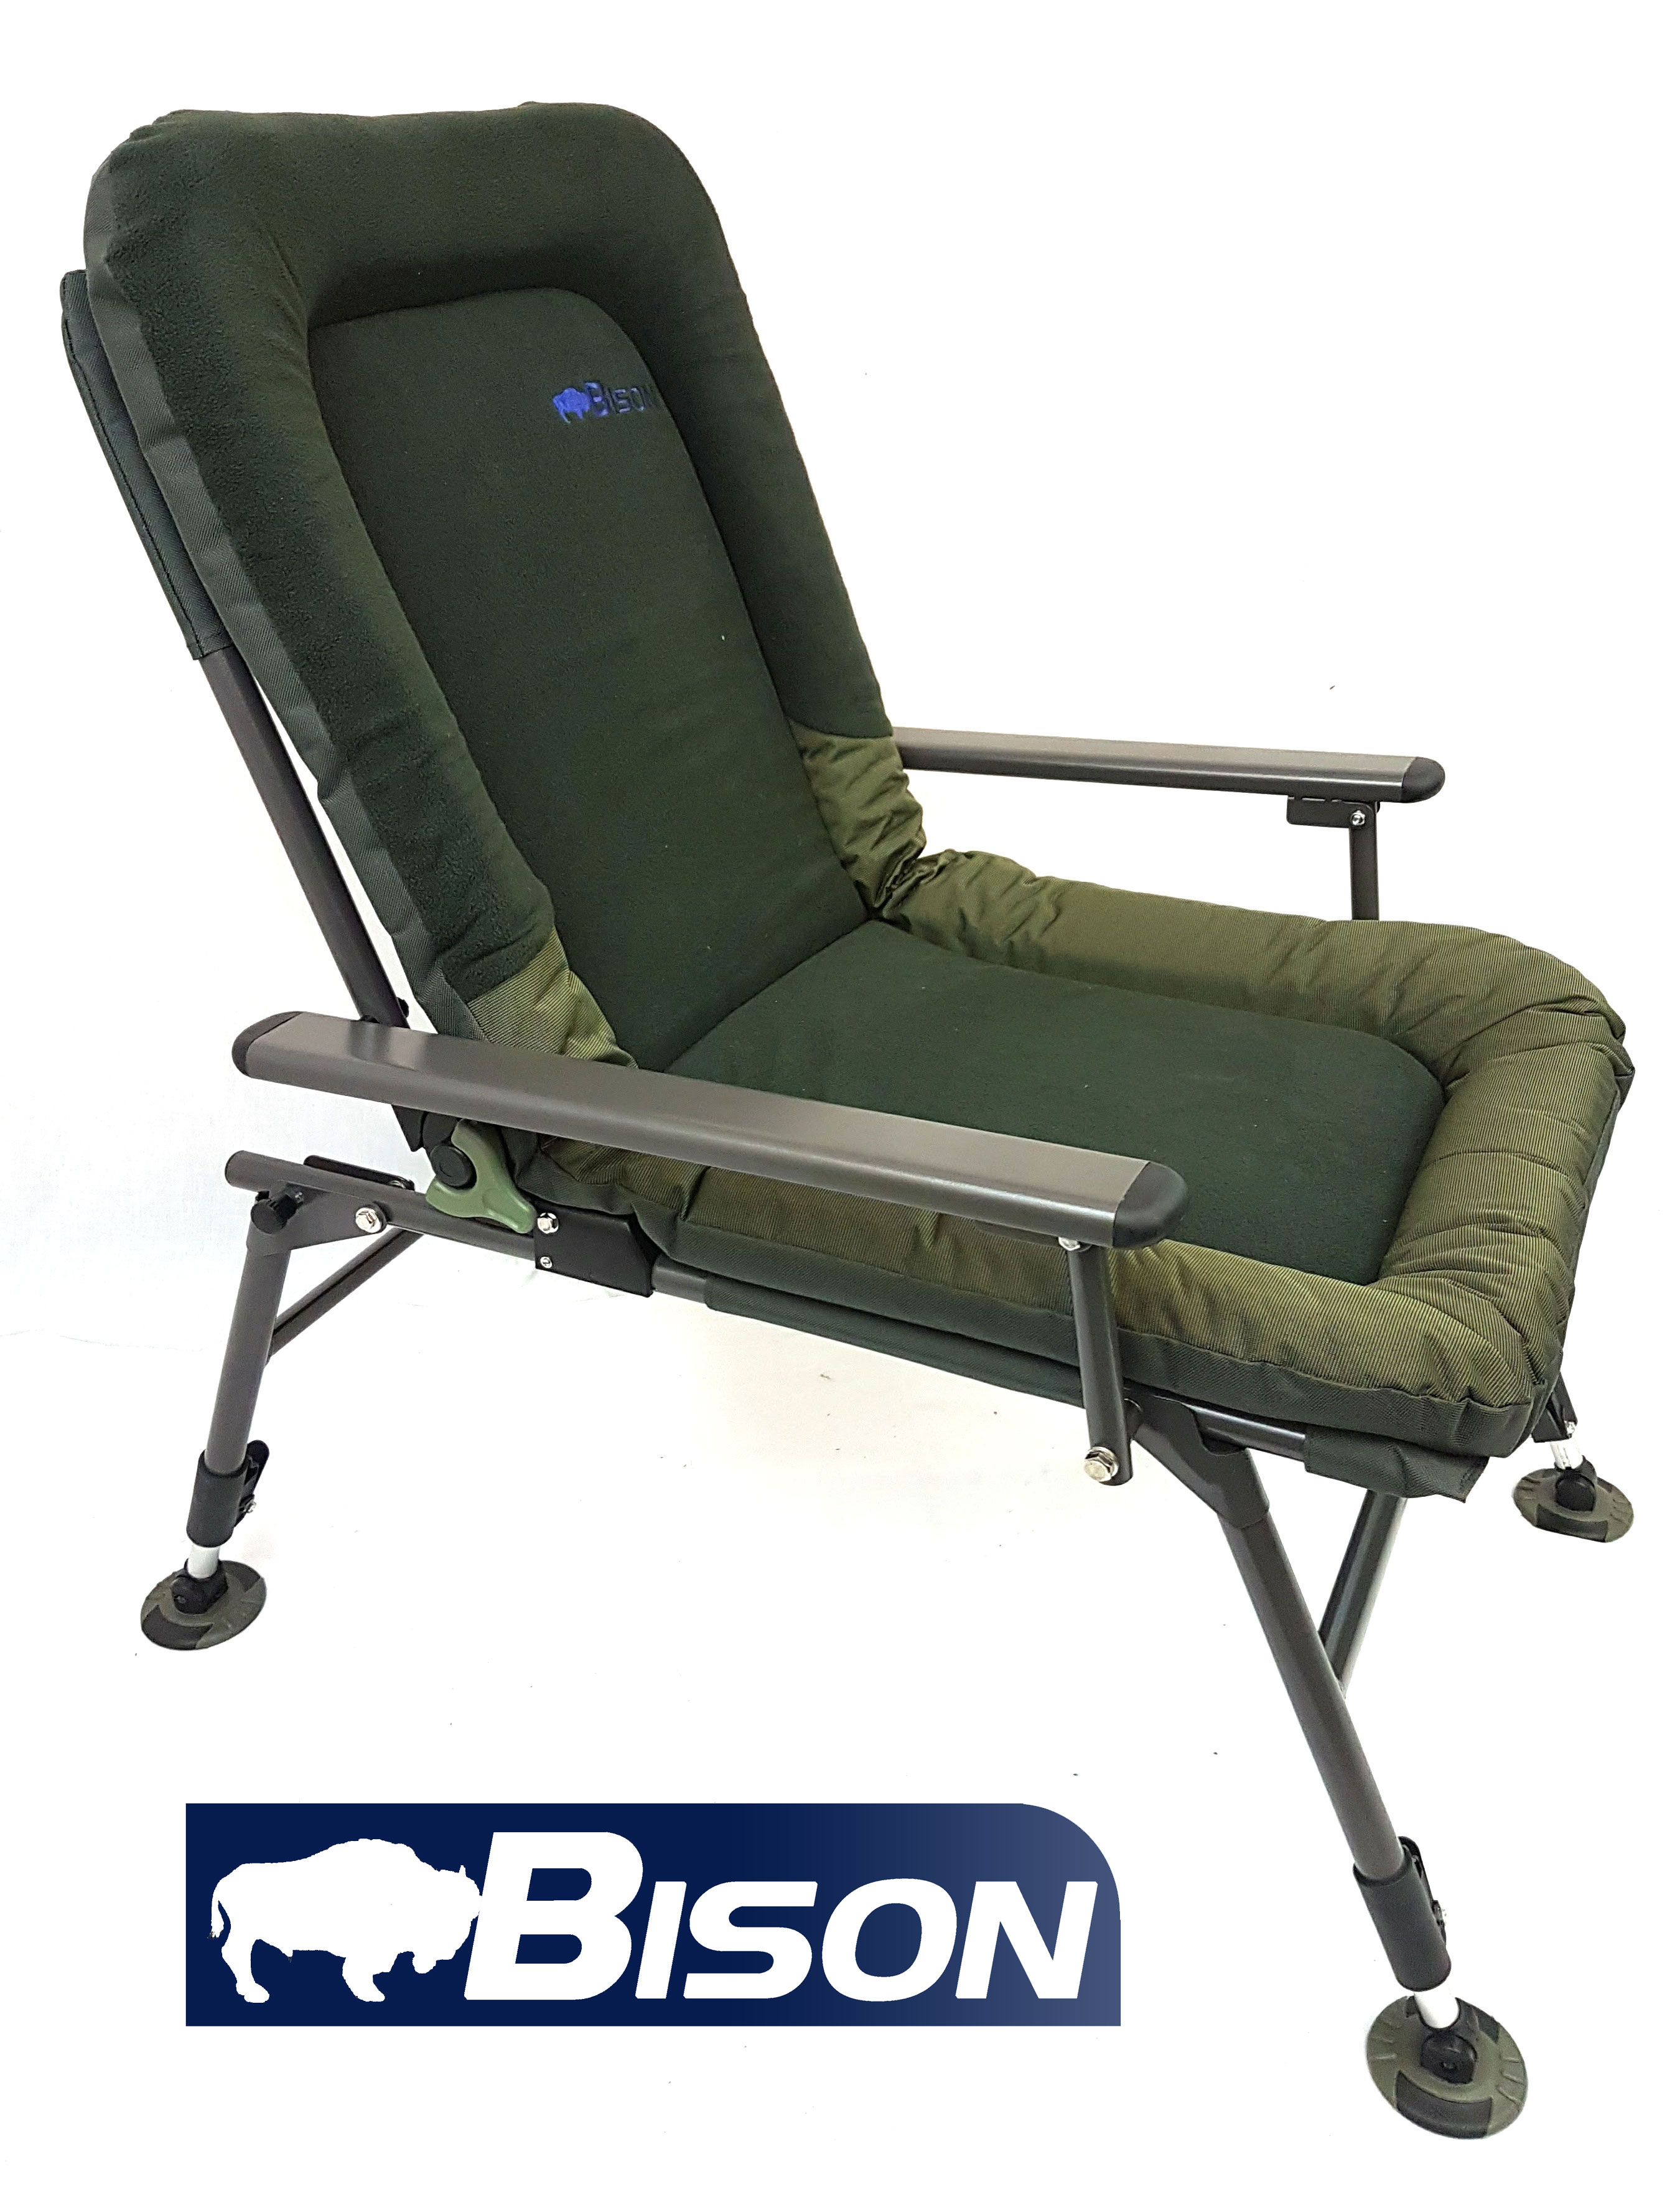 fishing chairs industrial dining bison carp chair ebay